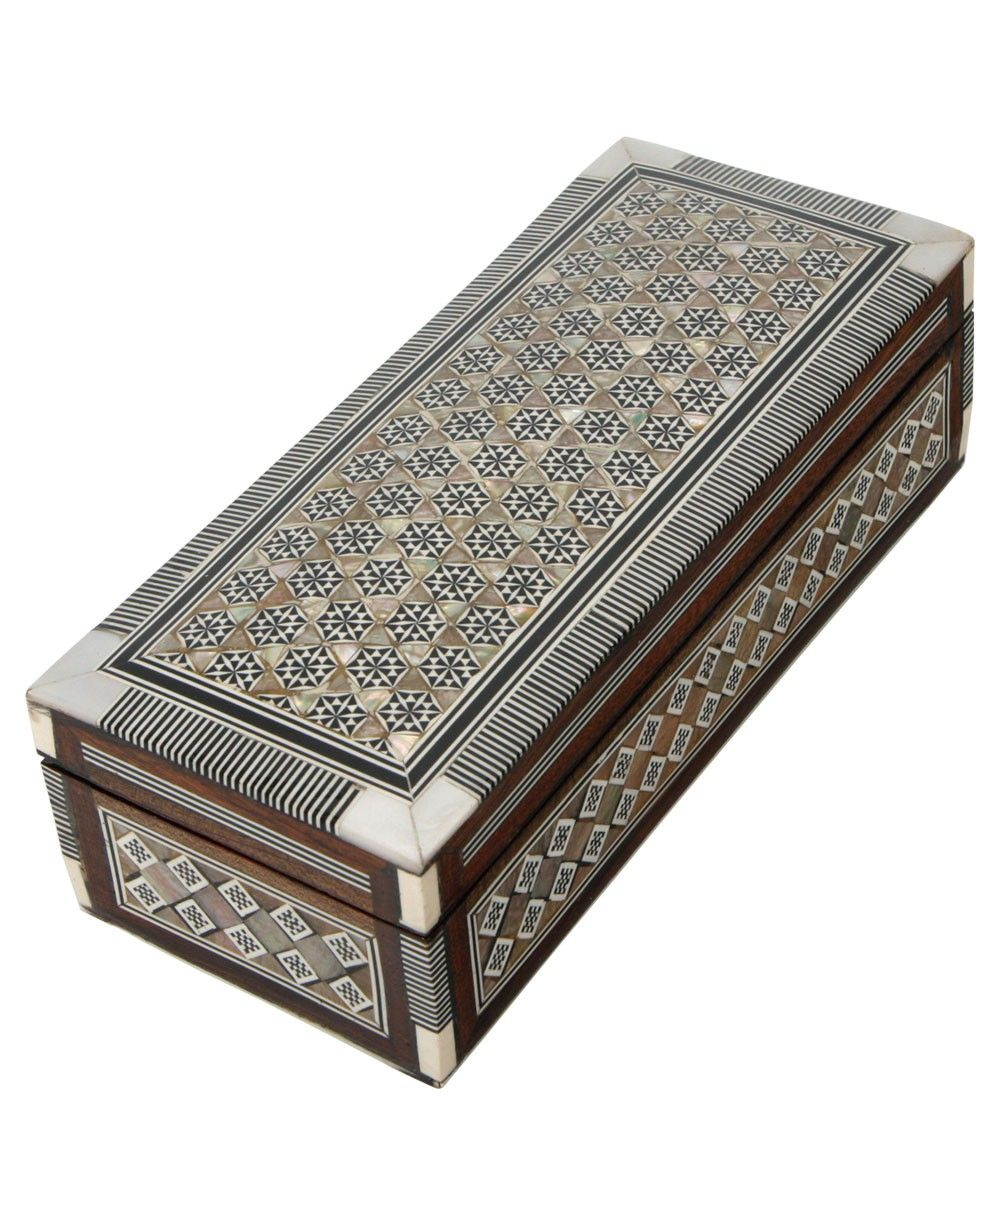 Decorative Boxes Egyptian Mother Of Pearl Decorative Box  Art V  Pinterest